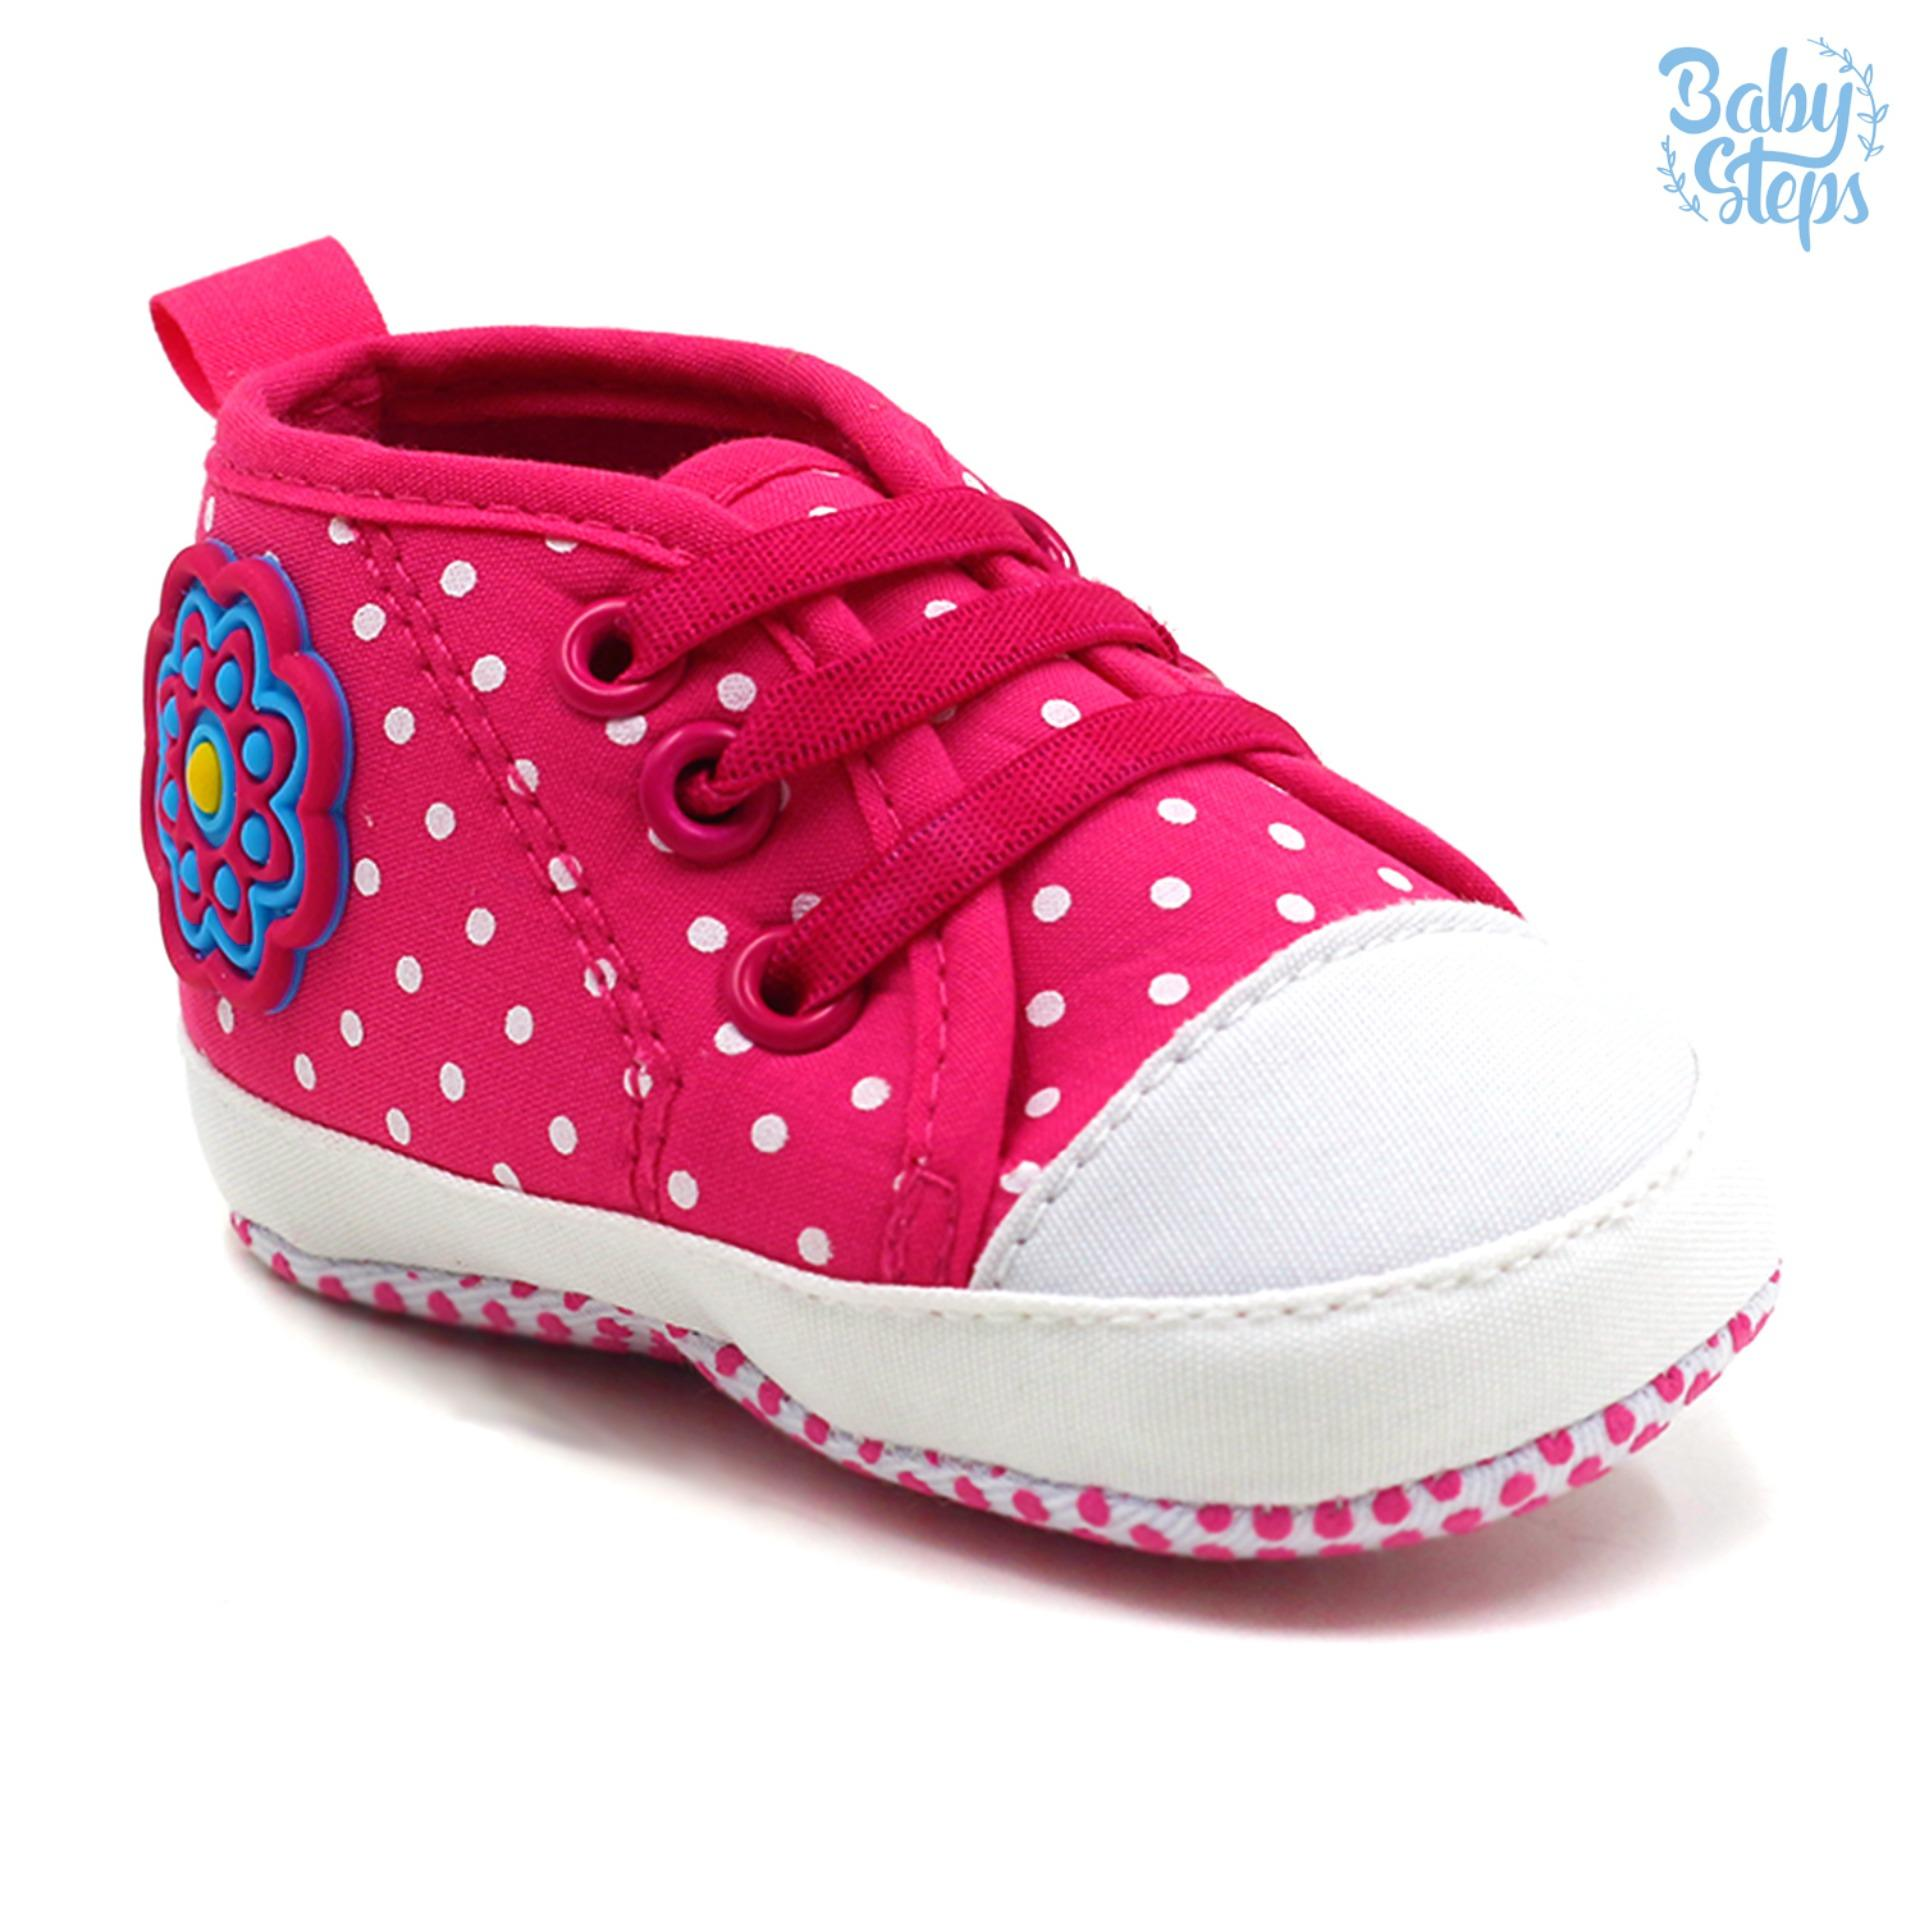 Philippines Baby Steps Flowerdots Lace Baby Girl Shoes Hot Pink